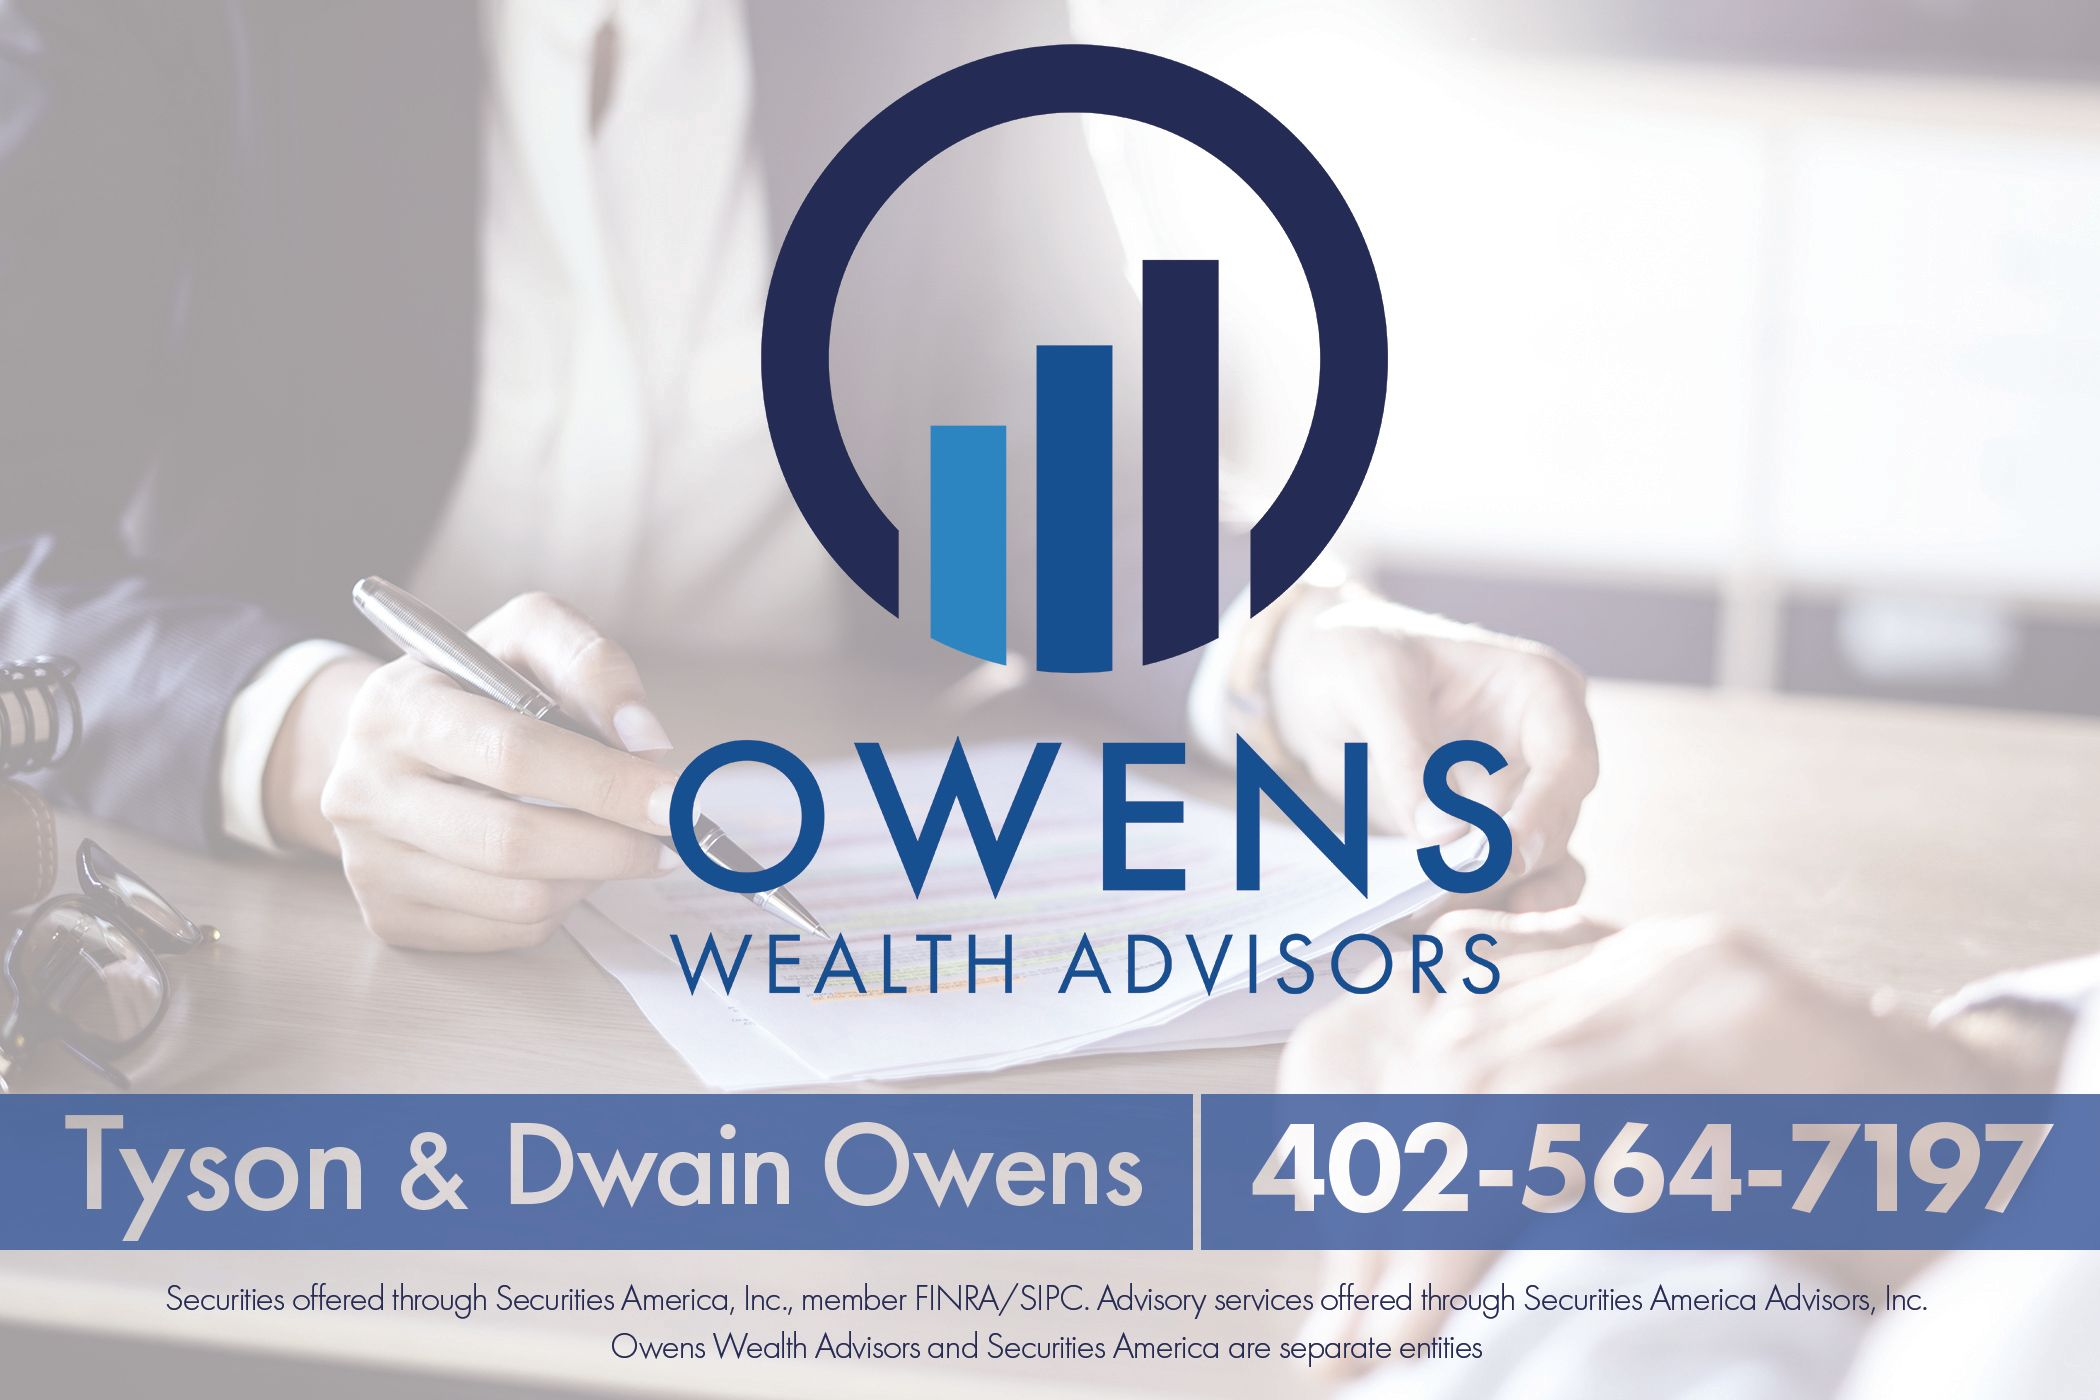 Owens Wealth Advisors